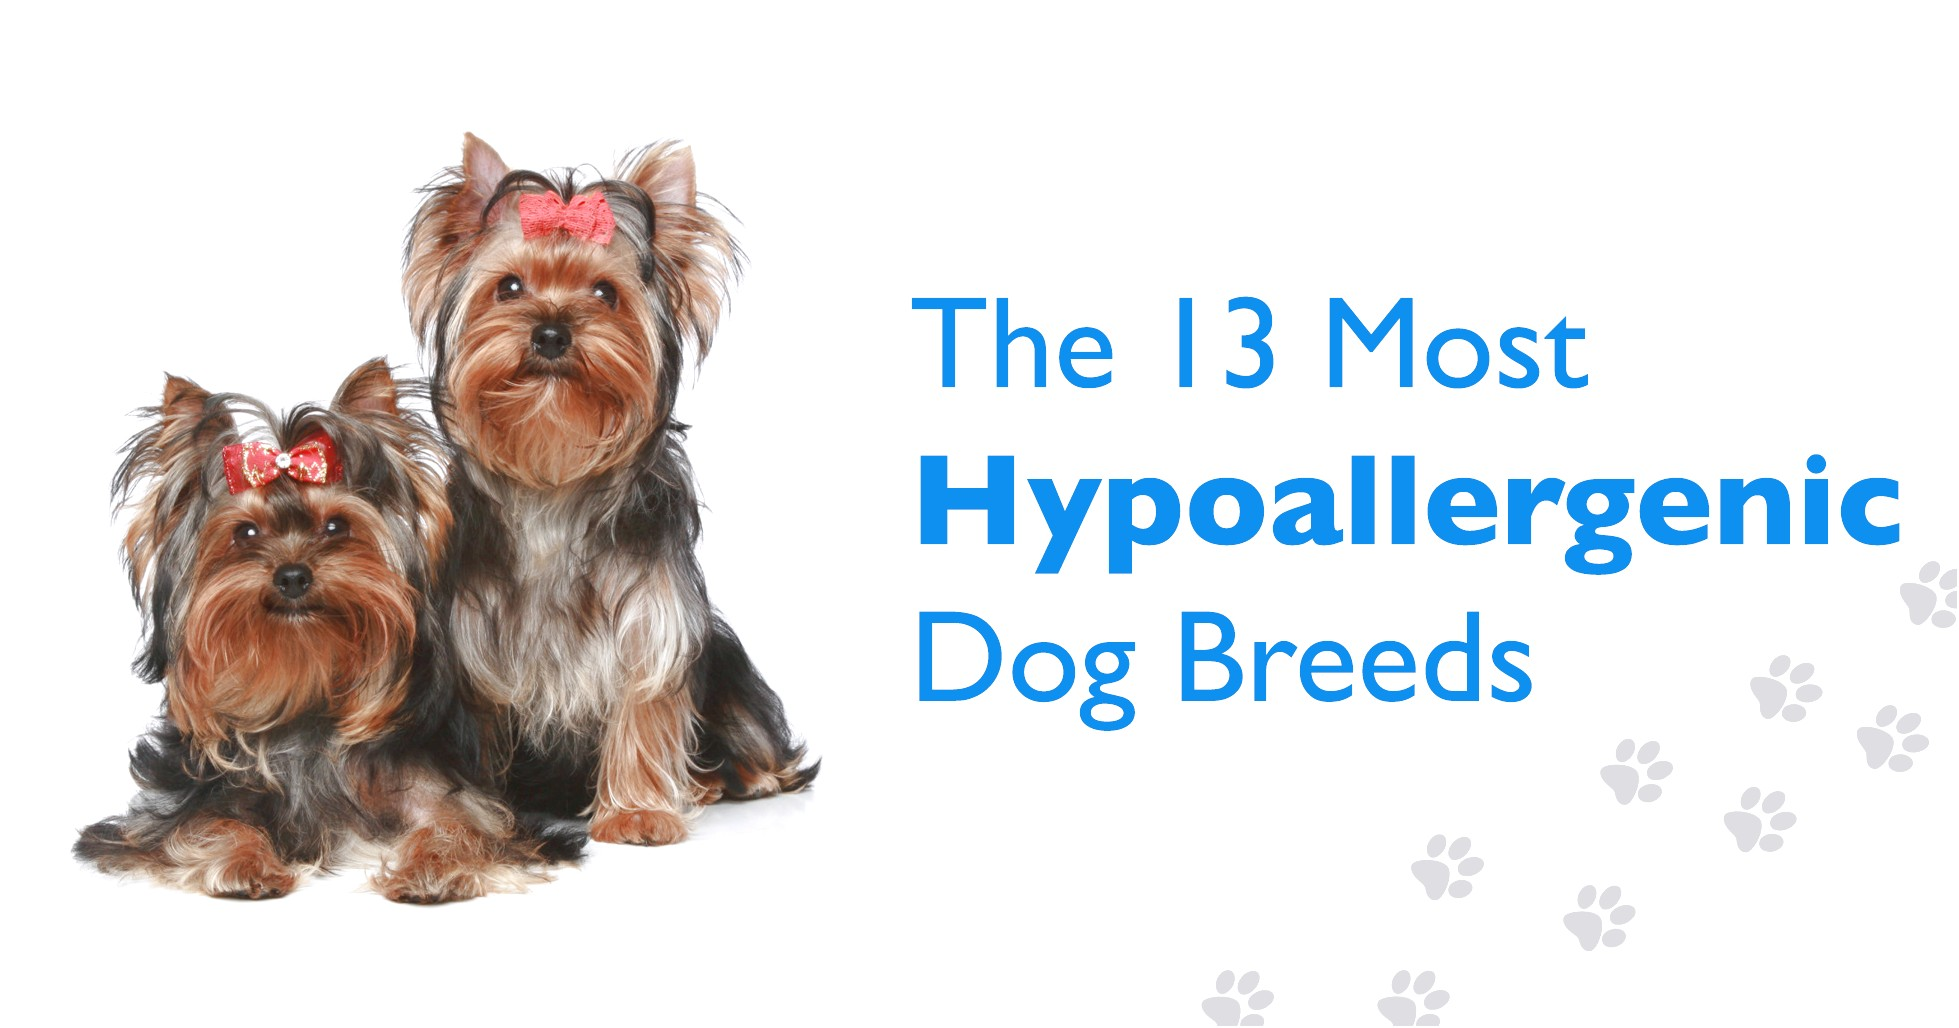 yorkshire terrier puppies hypoallergenic